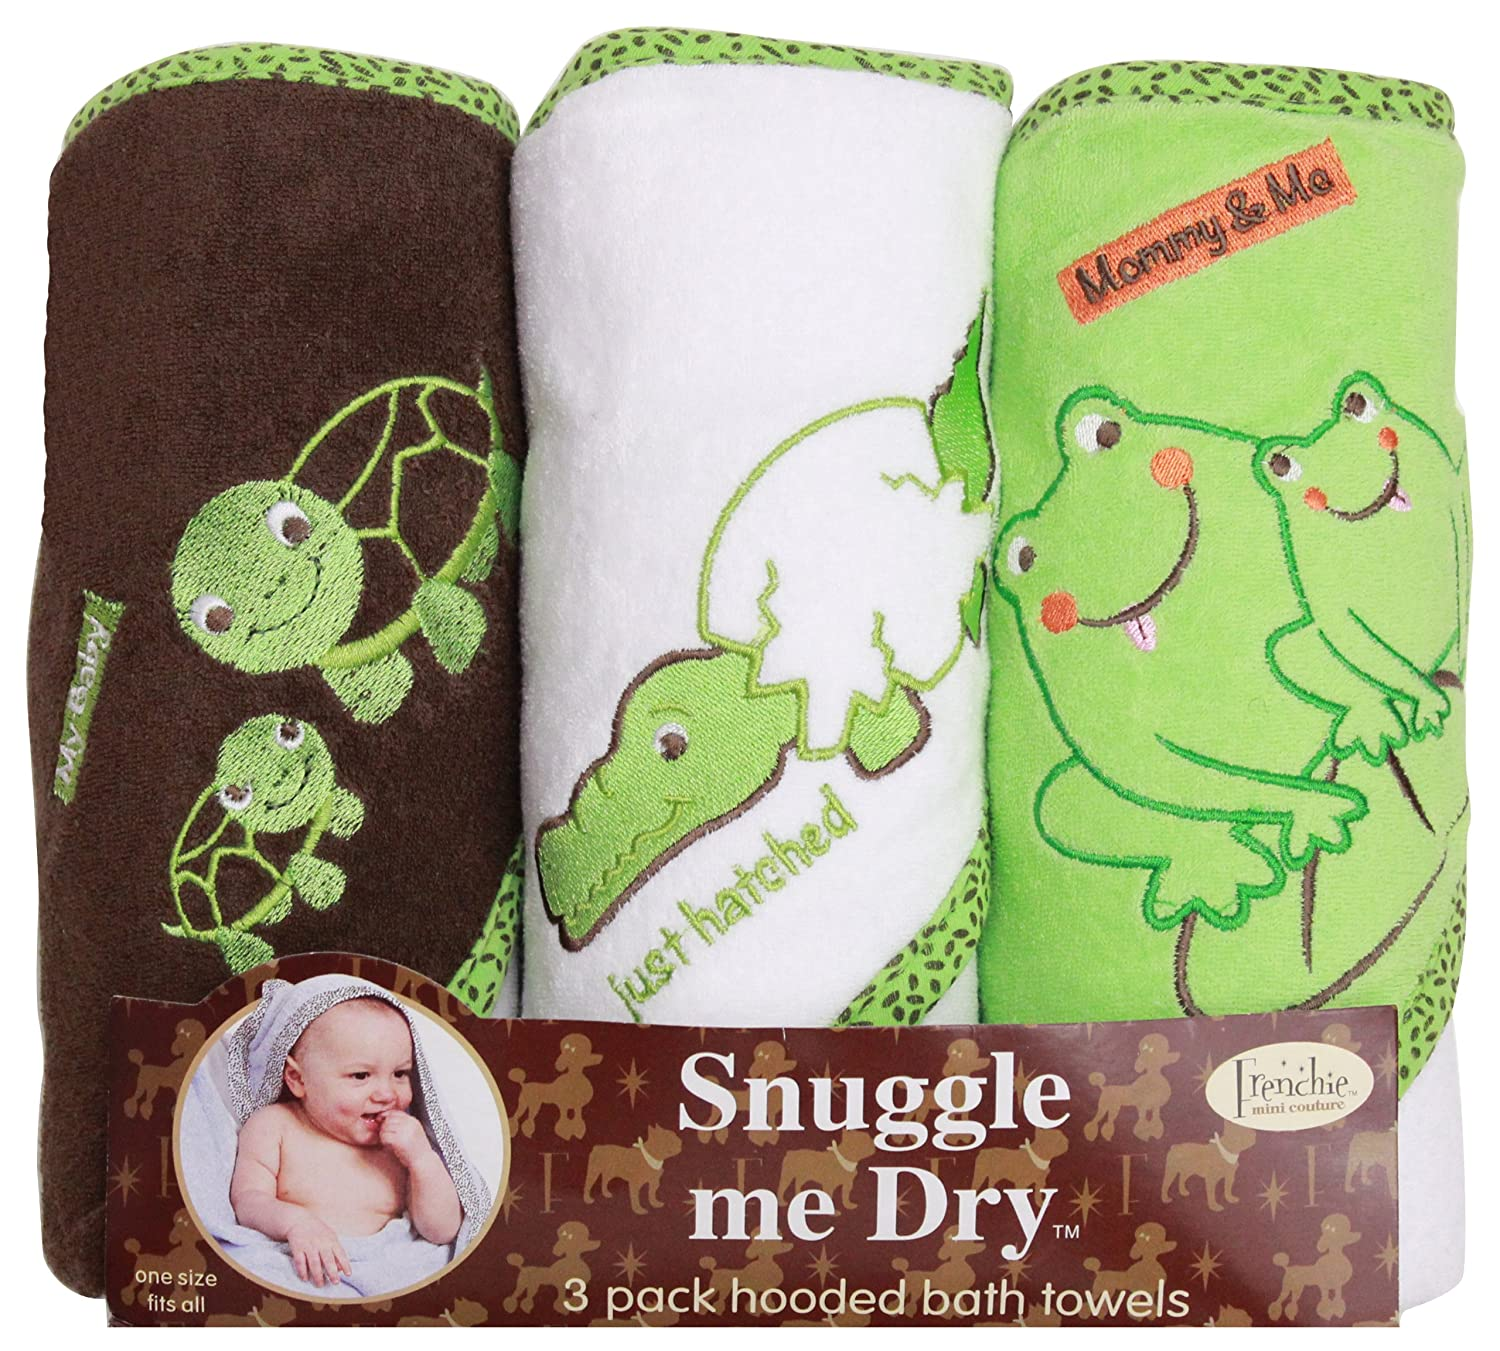 Grenouille/Aligator/Turtule Hodded serviette de bain Set Frenchie Mini Couture 15